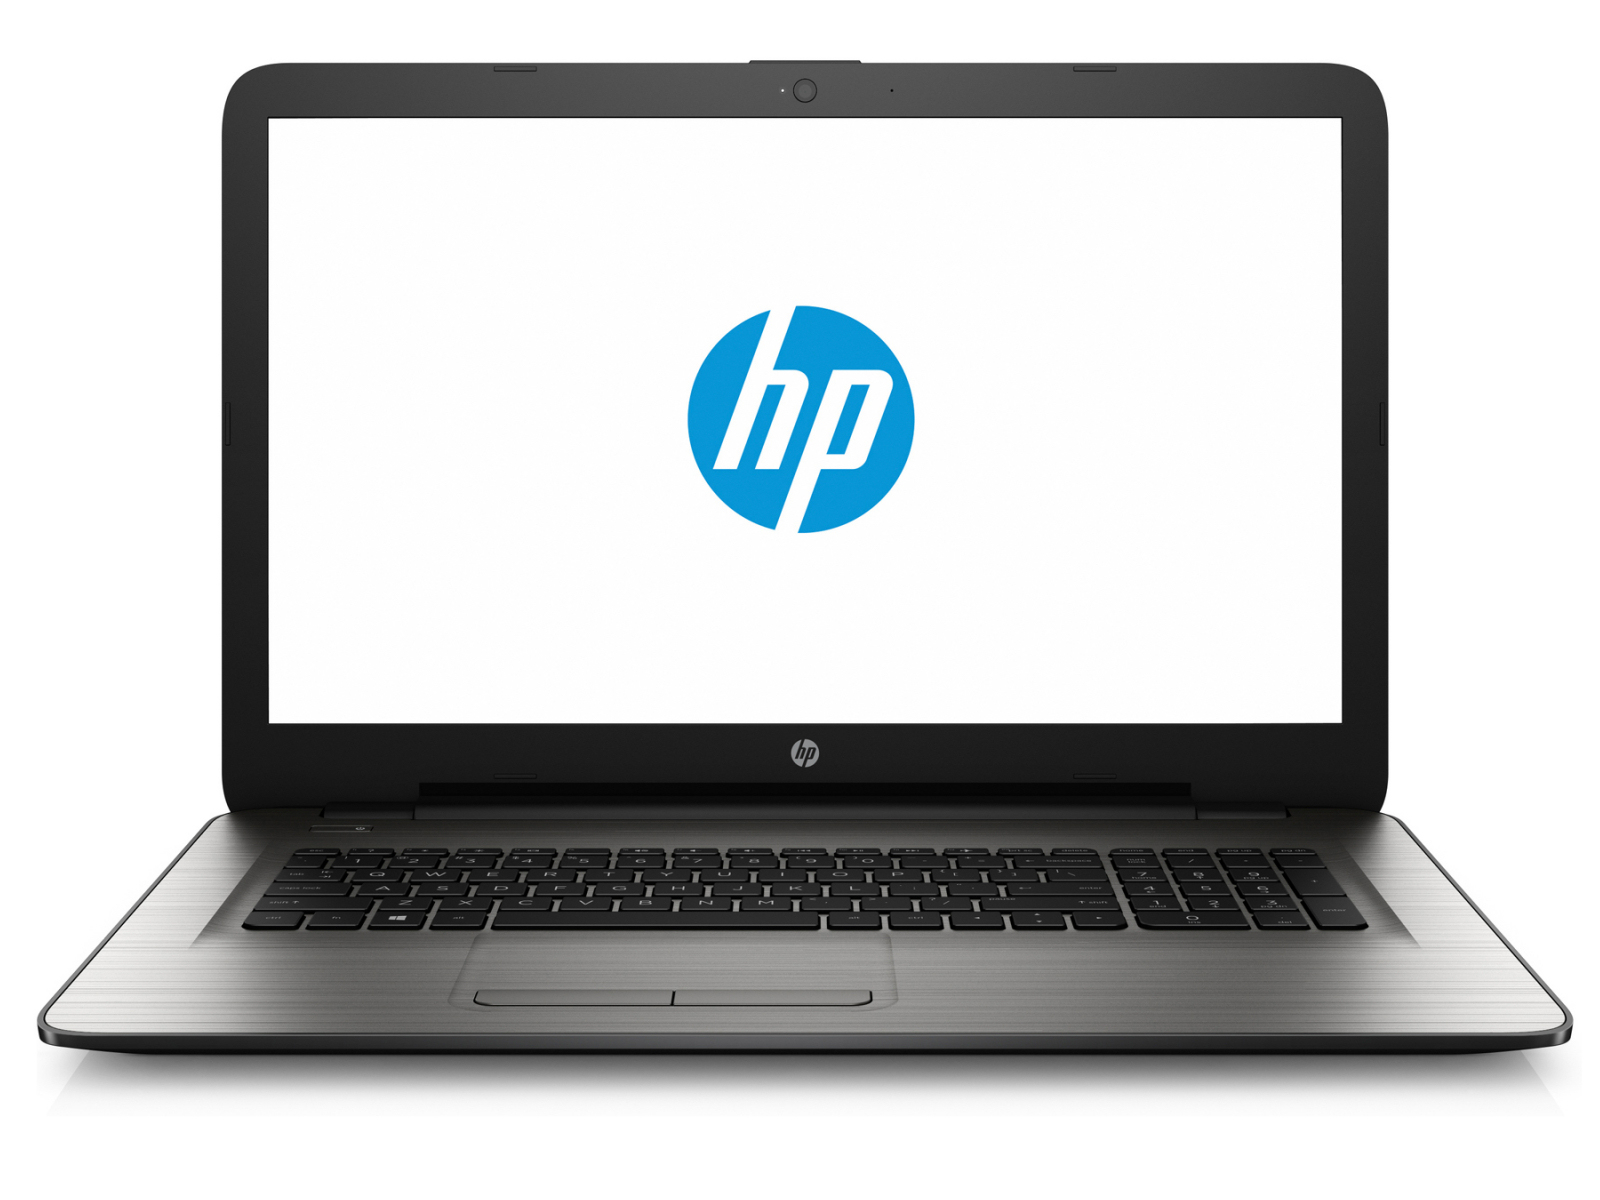 Hp 17 Y044ng Notebook Review Notebookcheck Net Reviews